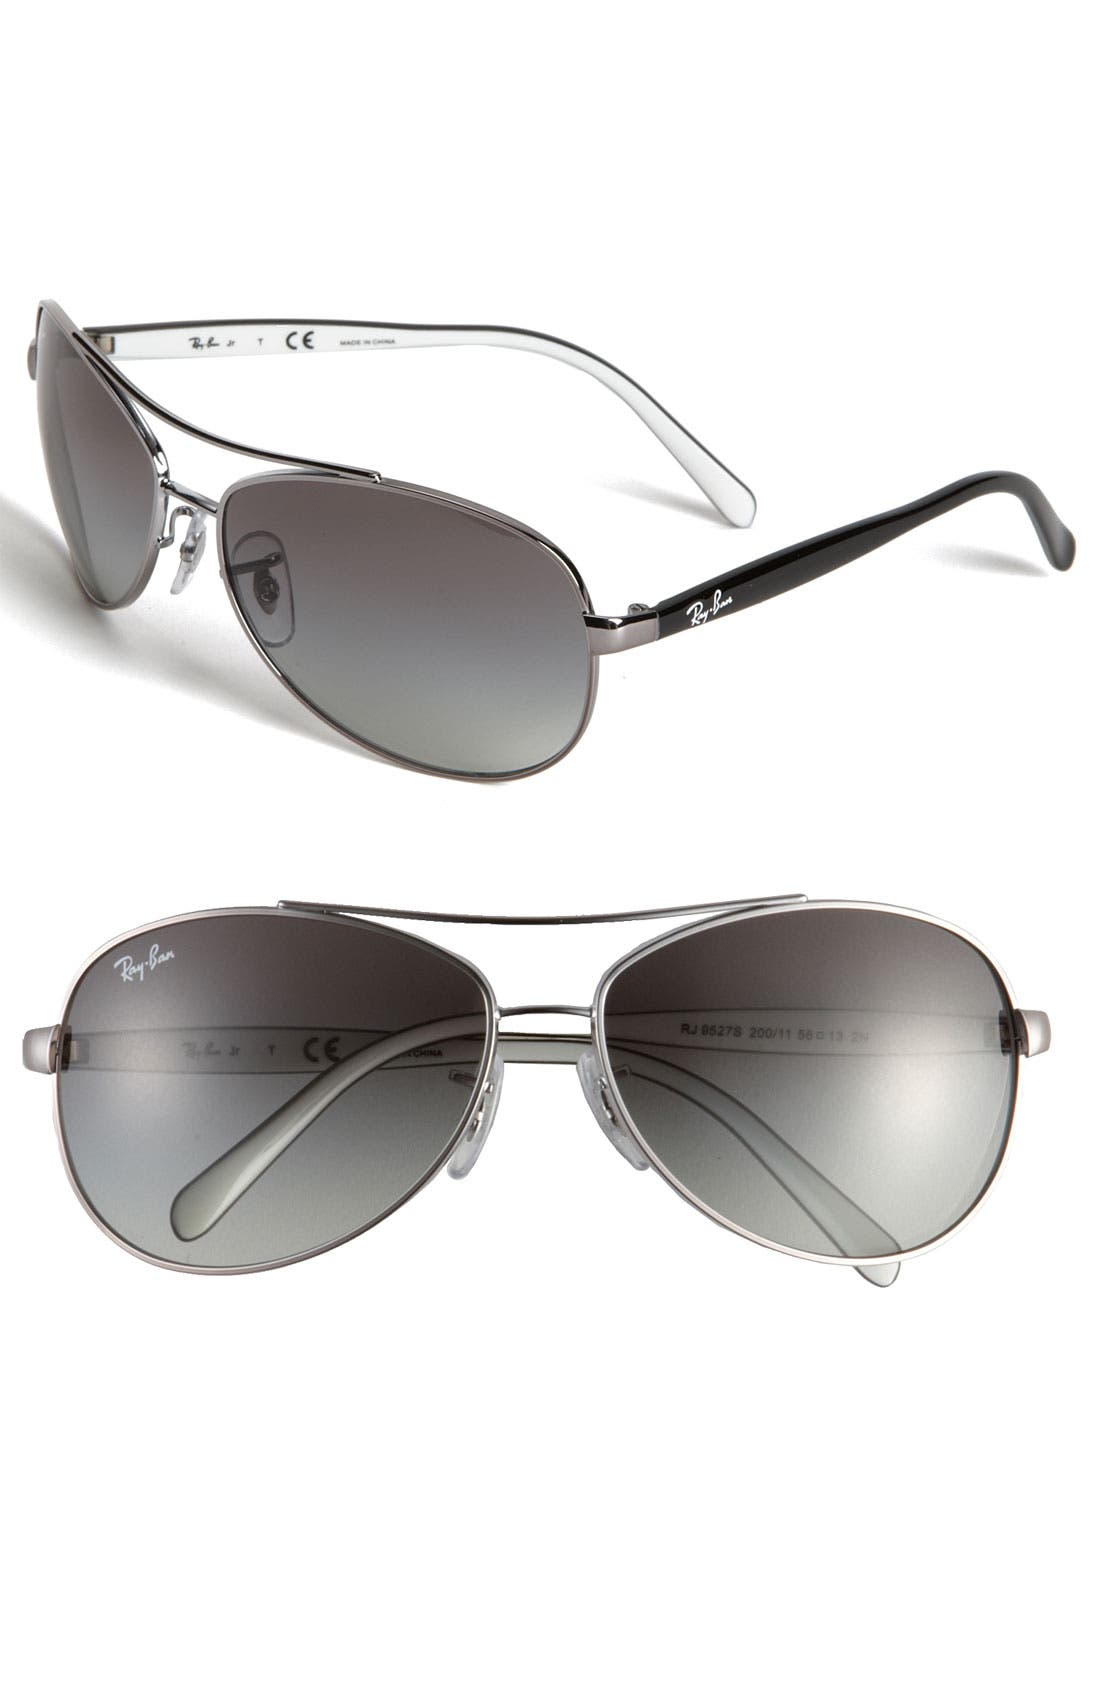 Main Image - Ray-Ban Aviator 56mm Sunglasses (Boys)